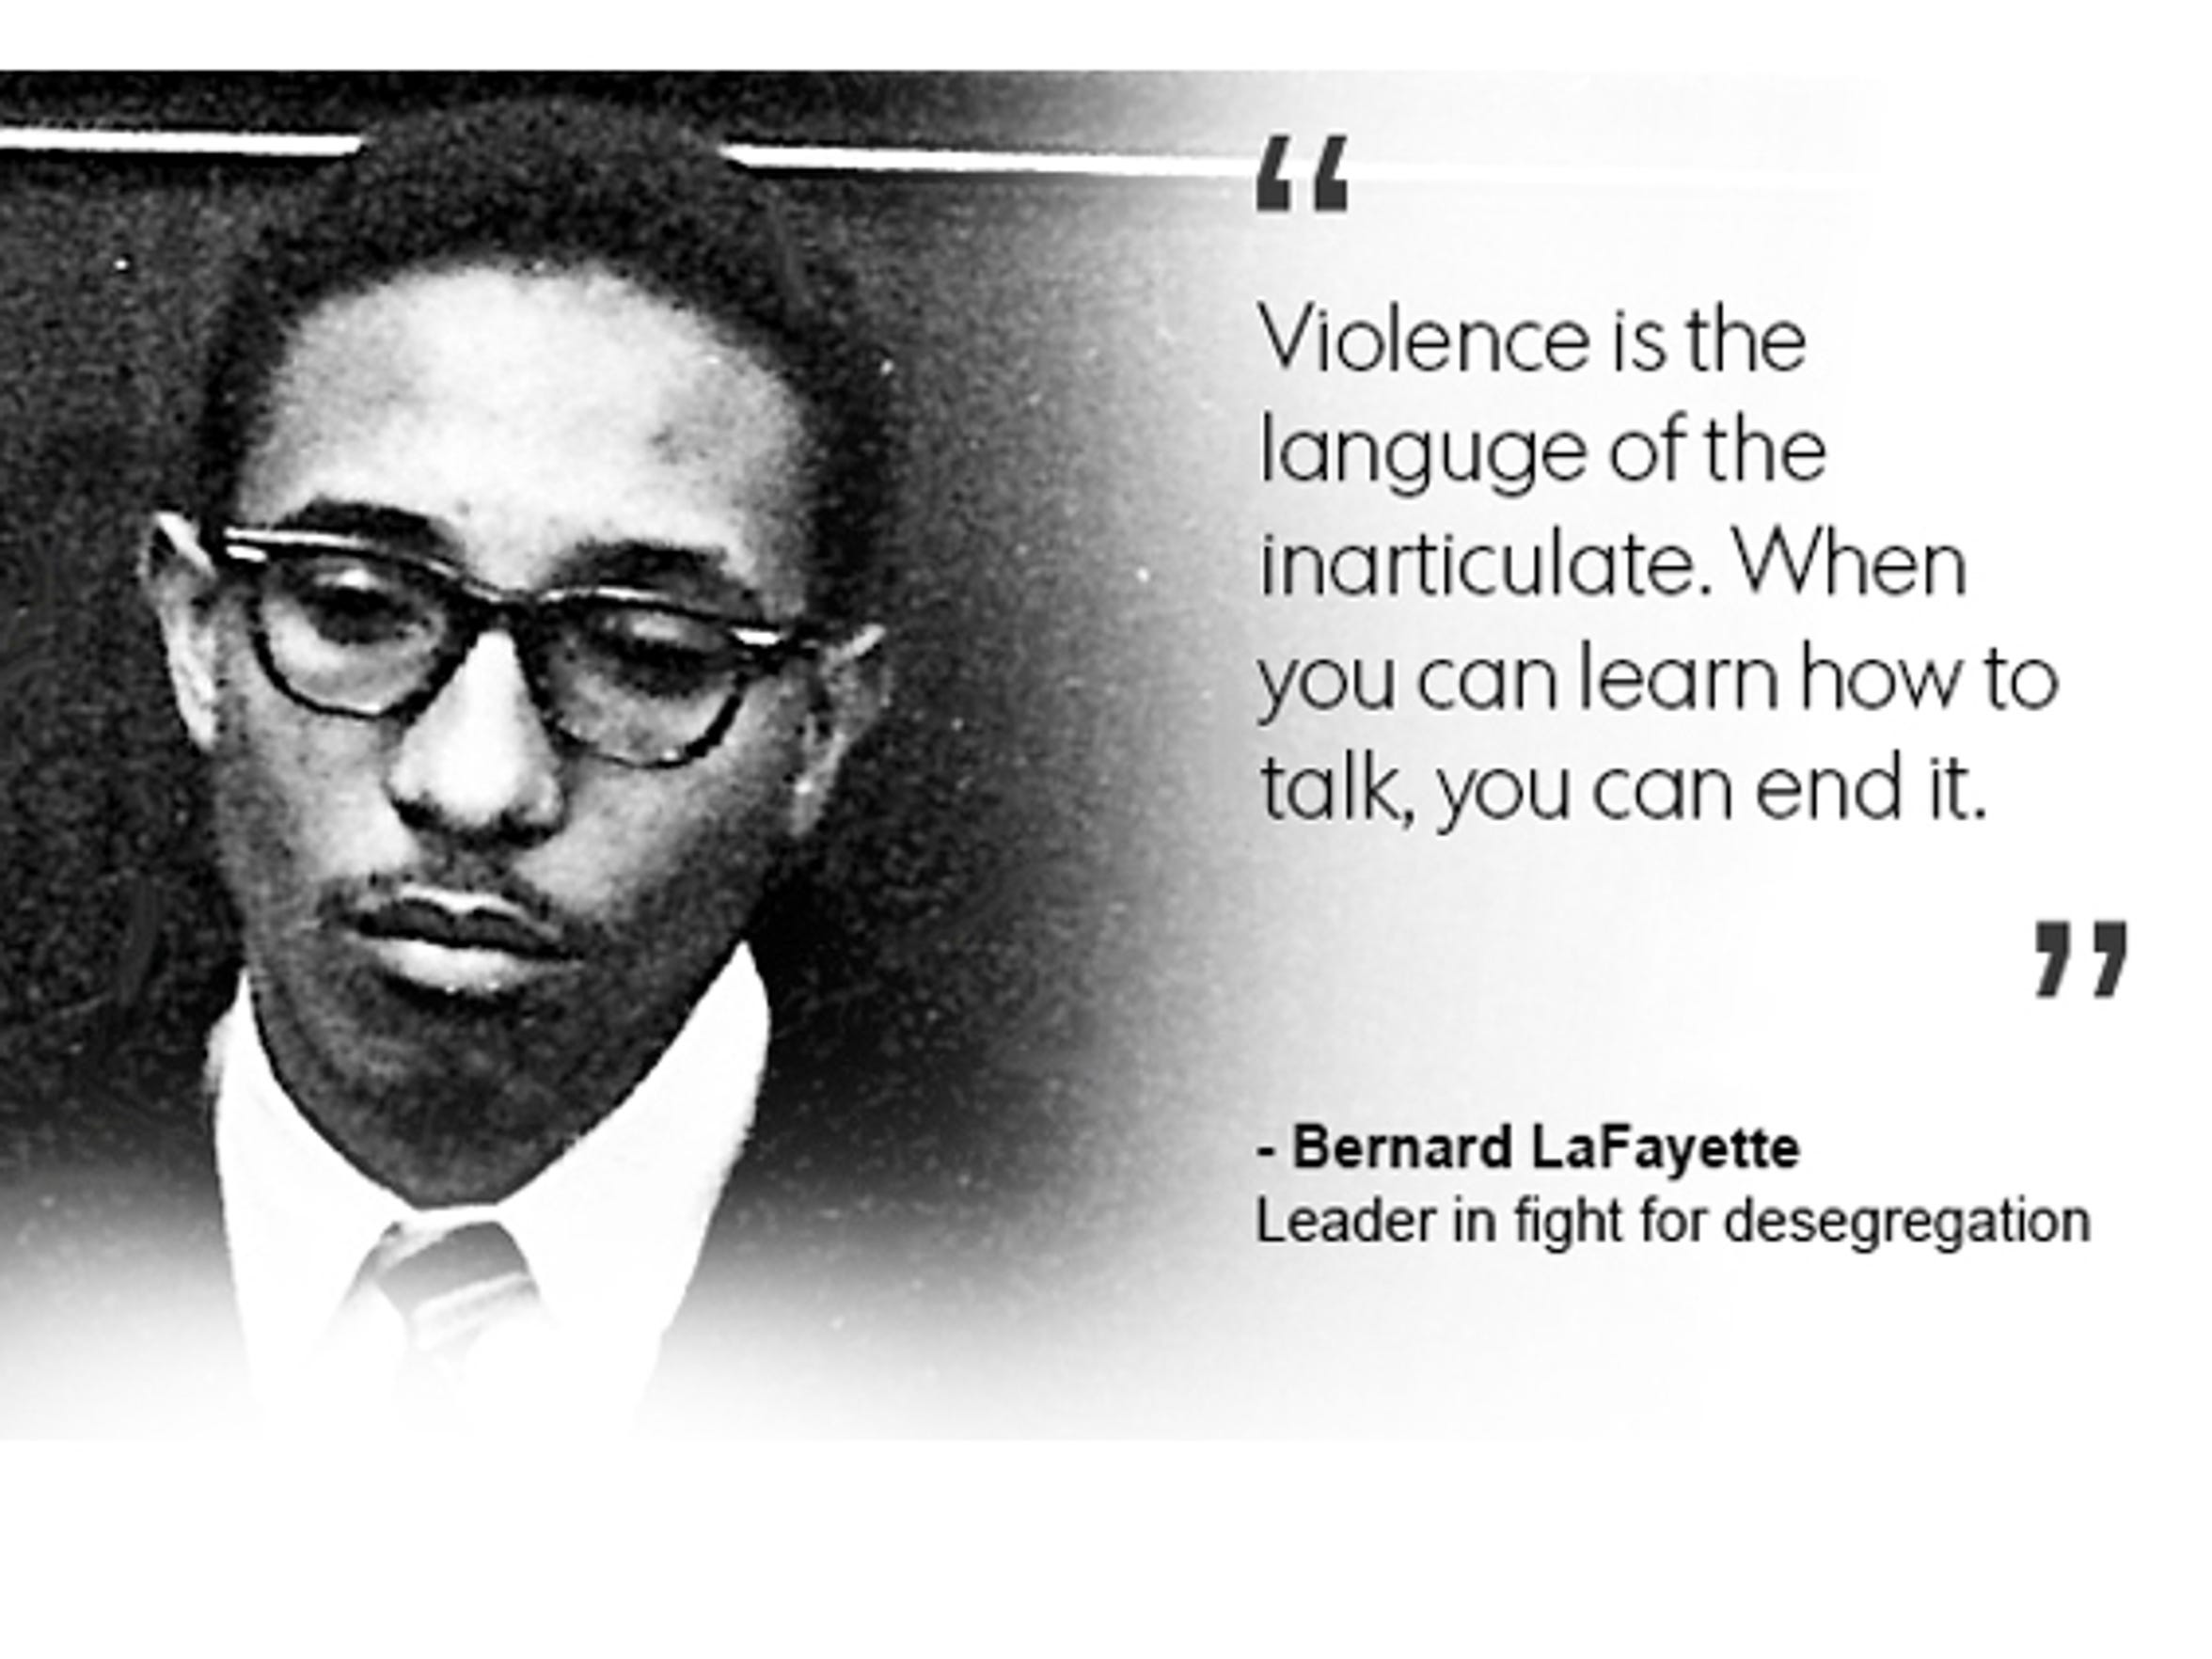 Bernard Lafayette, leader in fight for desegregation